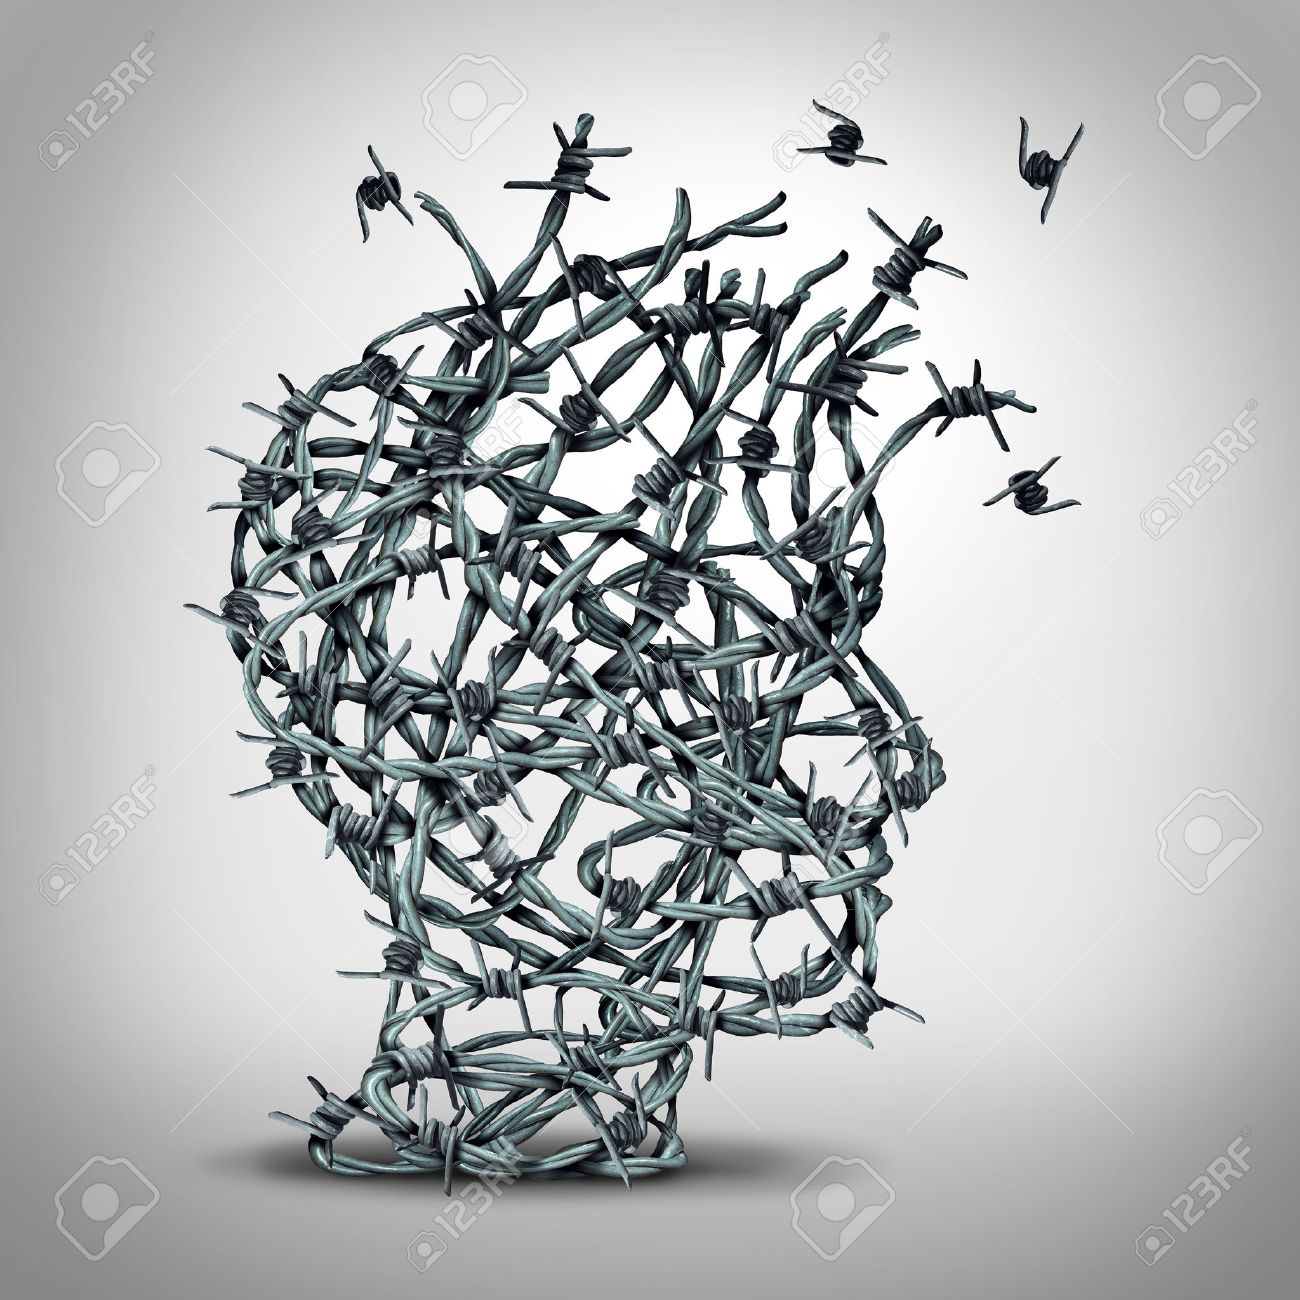 Anxiety solution and freedom from fear and escape from tortured thinking and depression concept as a group of tangled barbwire or barbed wire fence shaped as a human head breaking free as a metaphor for psychological or psychiatric icon. - 50923995